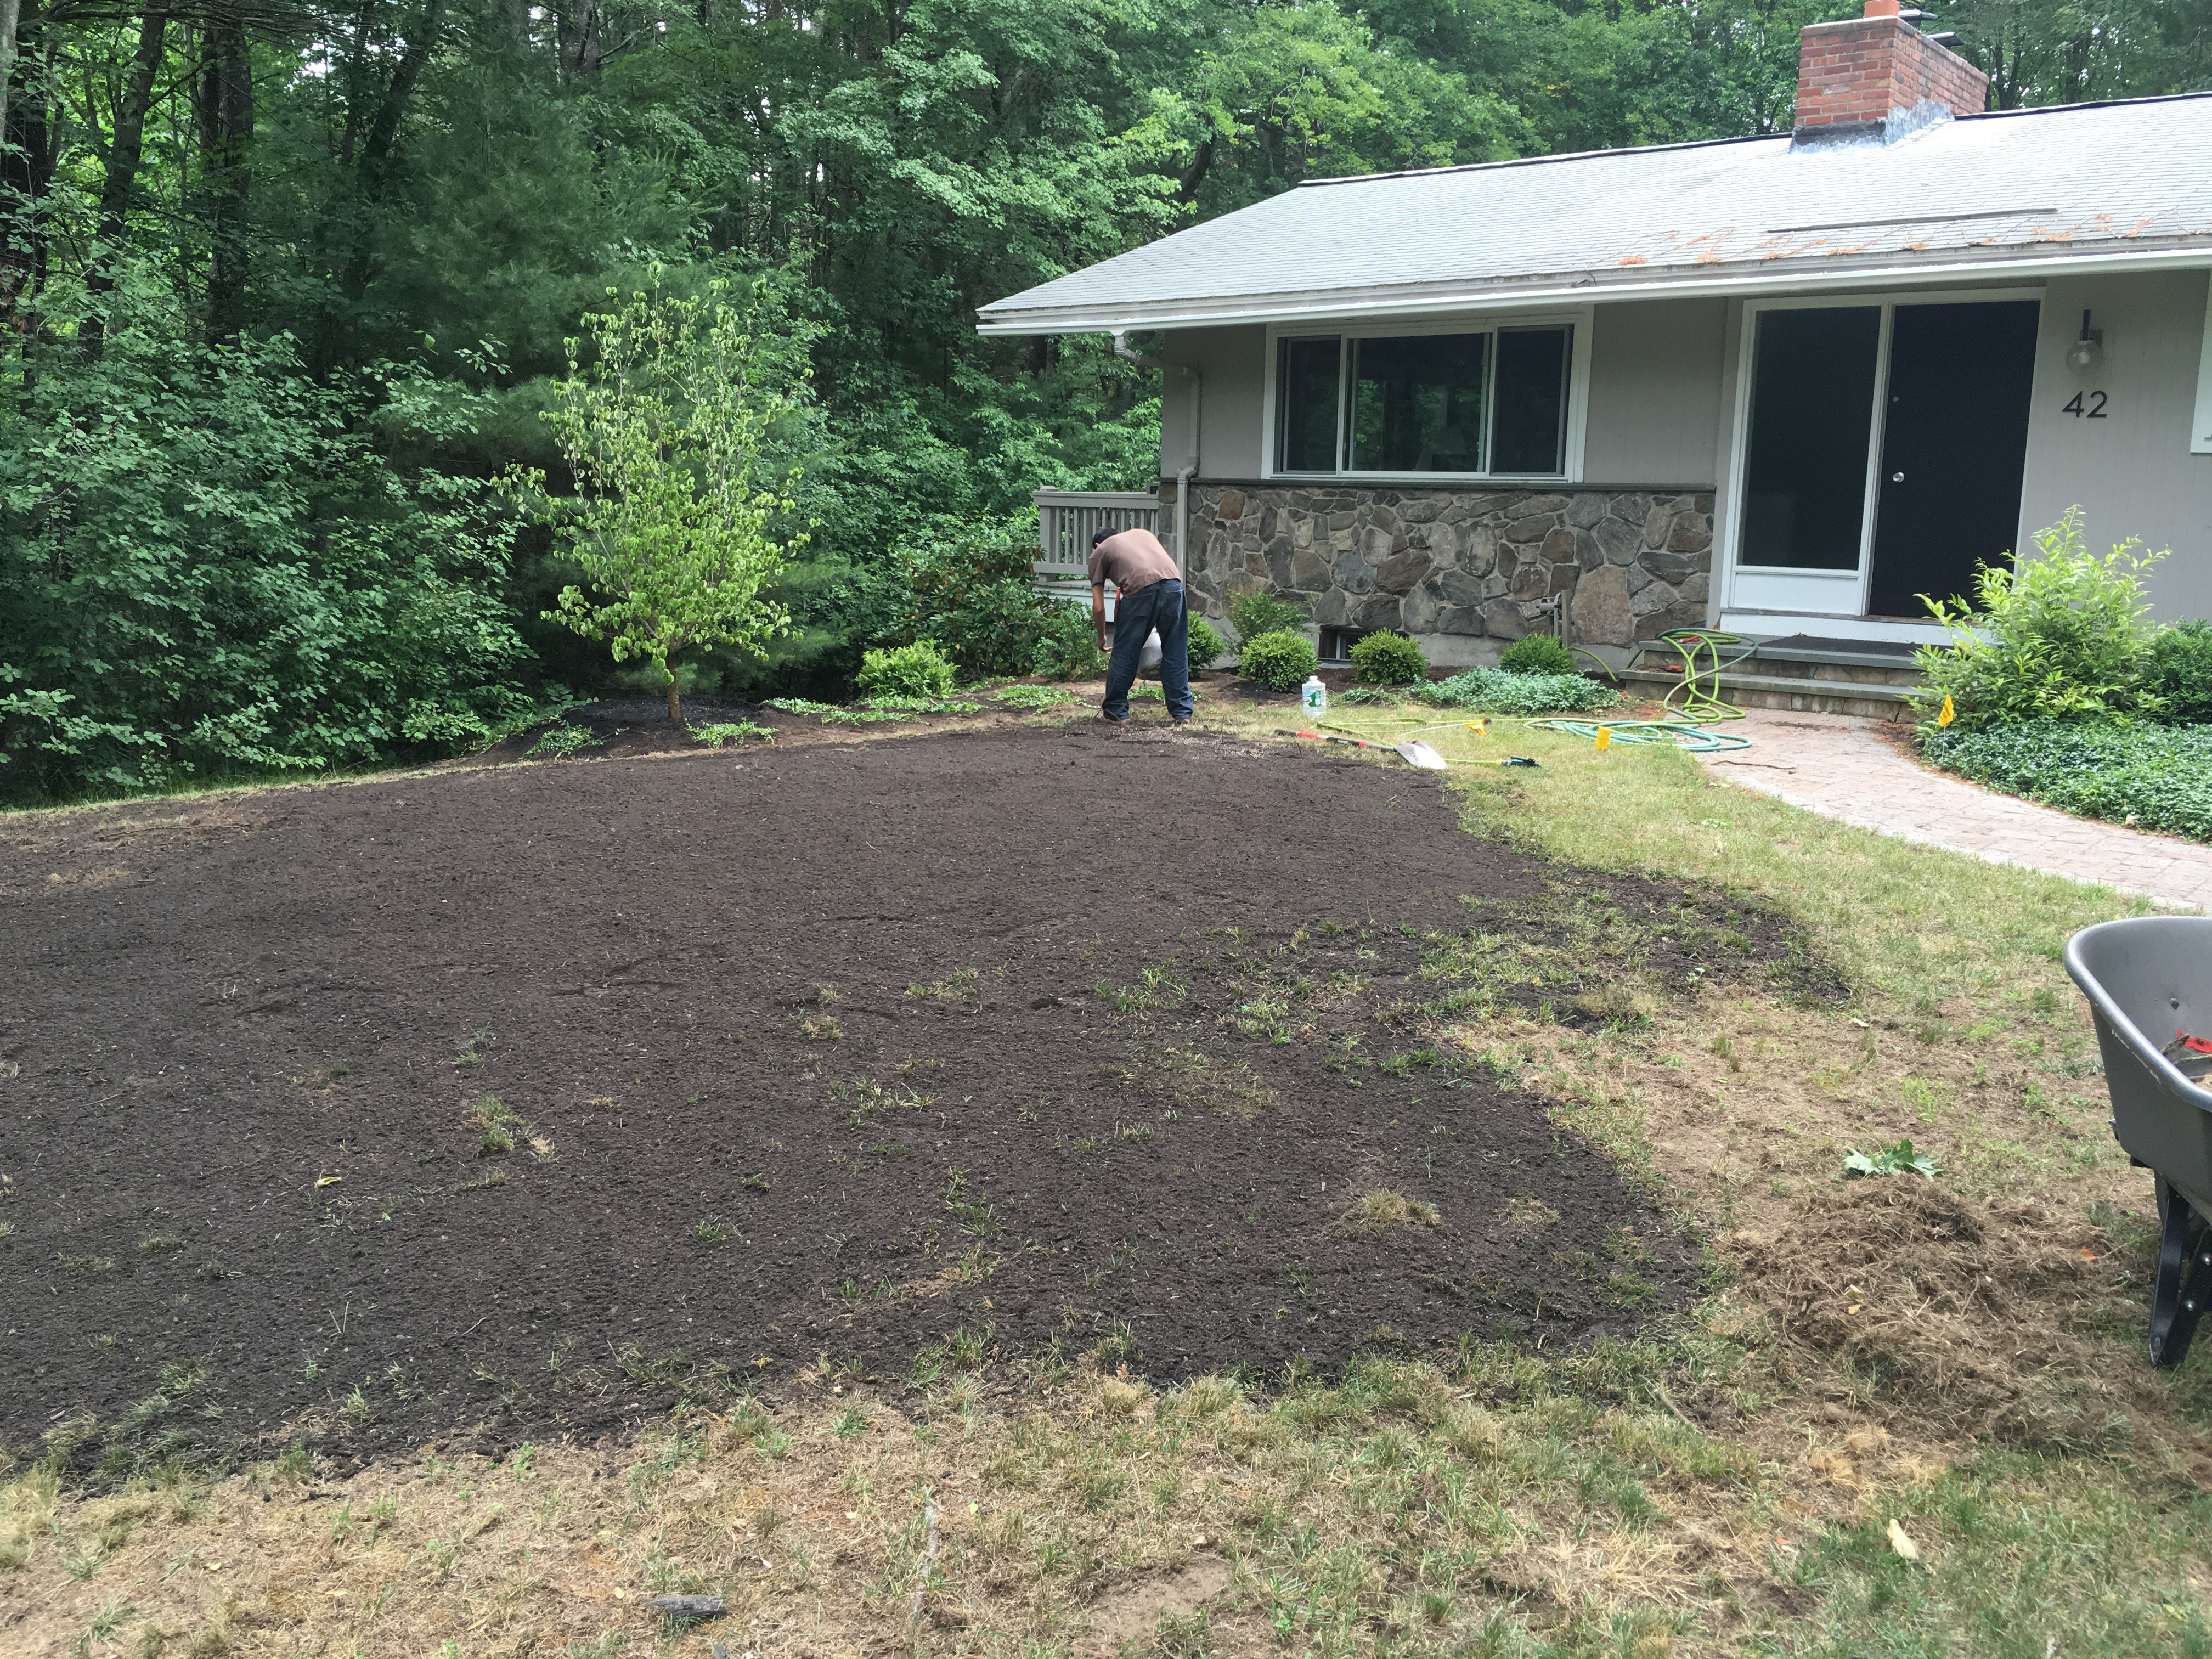 During installation seeding the lawn